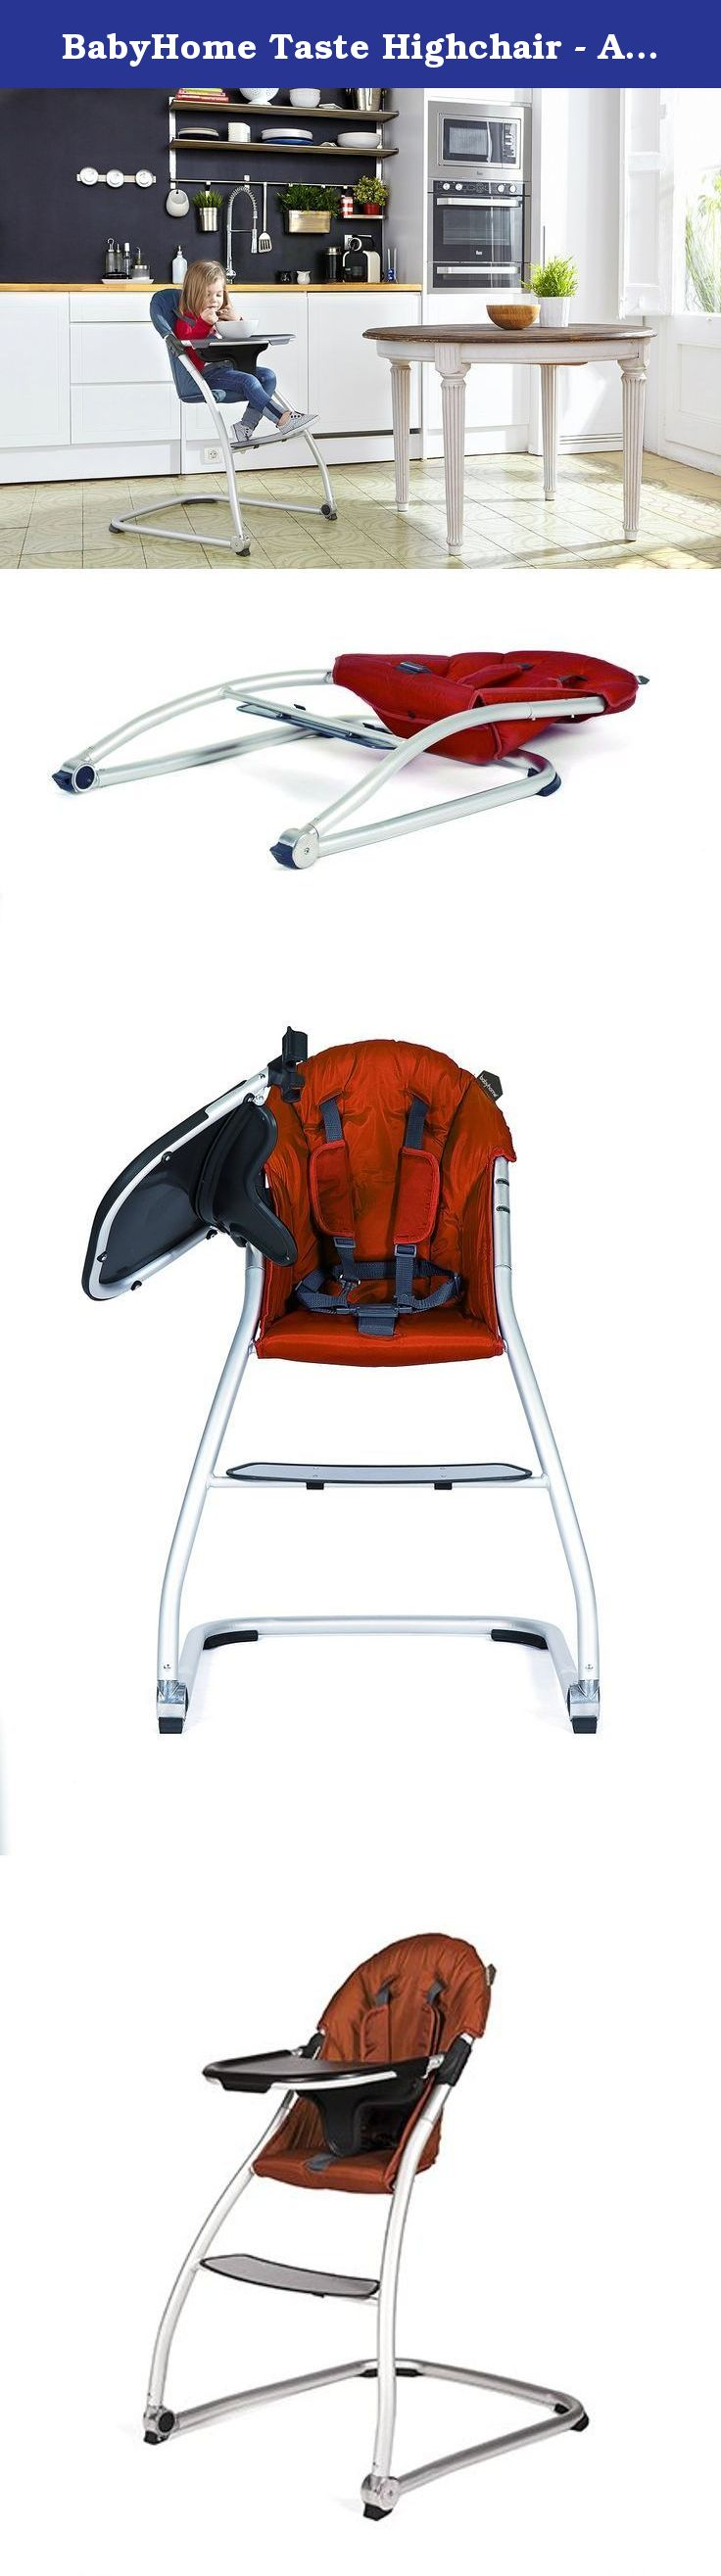 BabyHome Taste Highchair Agril Two words to describe the